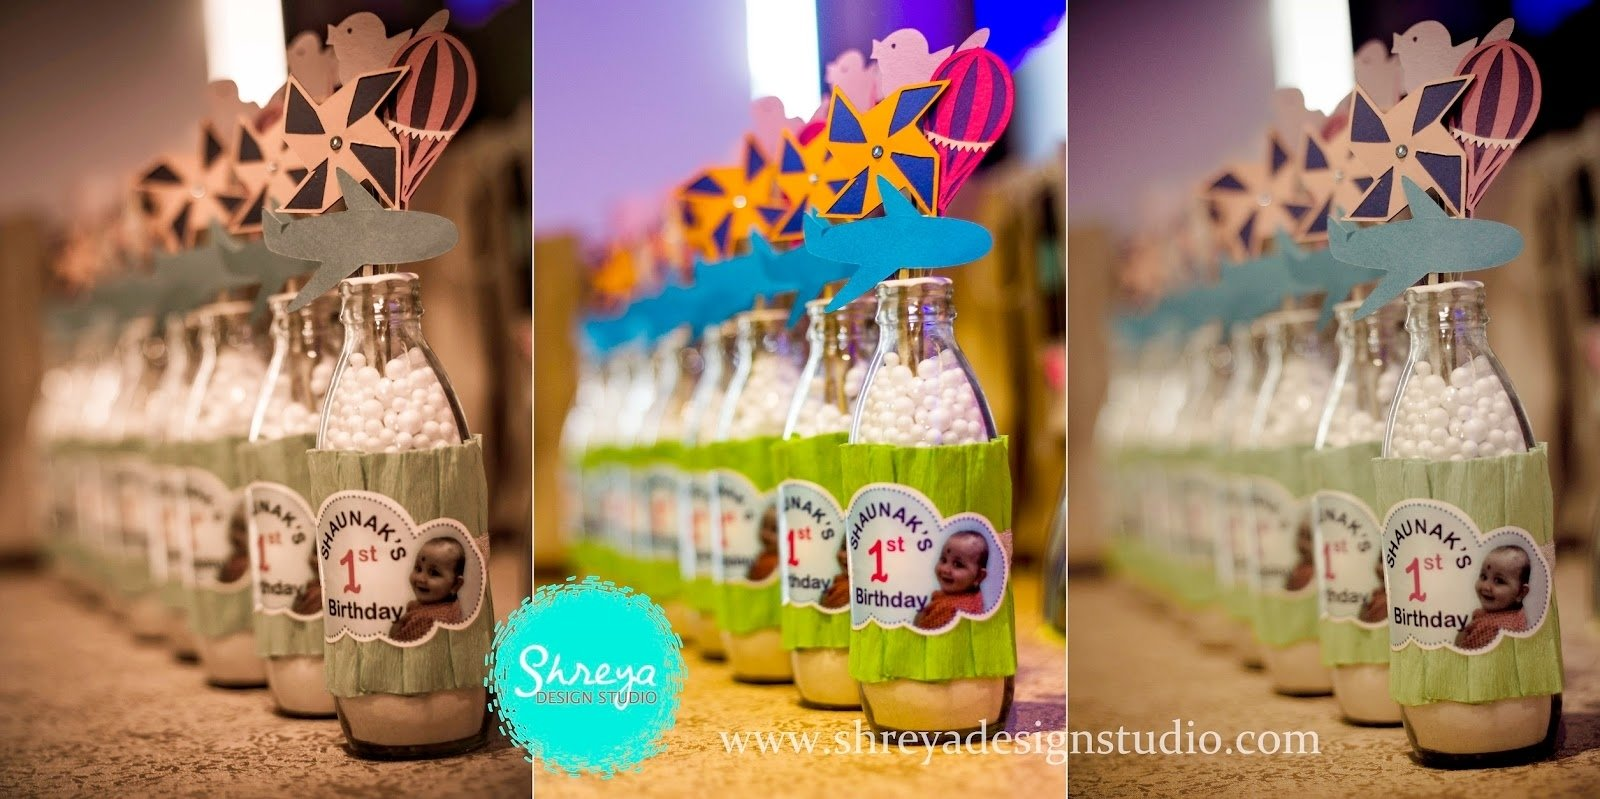 handmade return gifts- shaunak's 1st birthday party | shreya design